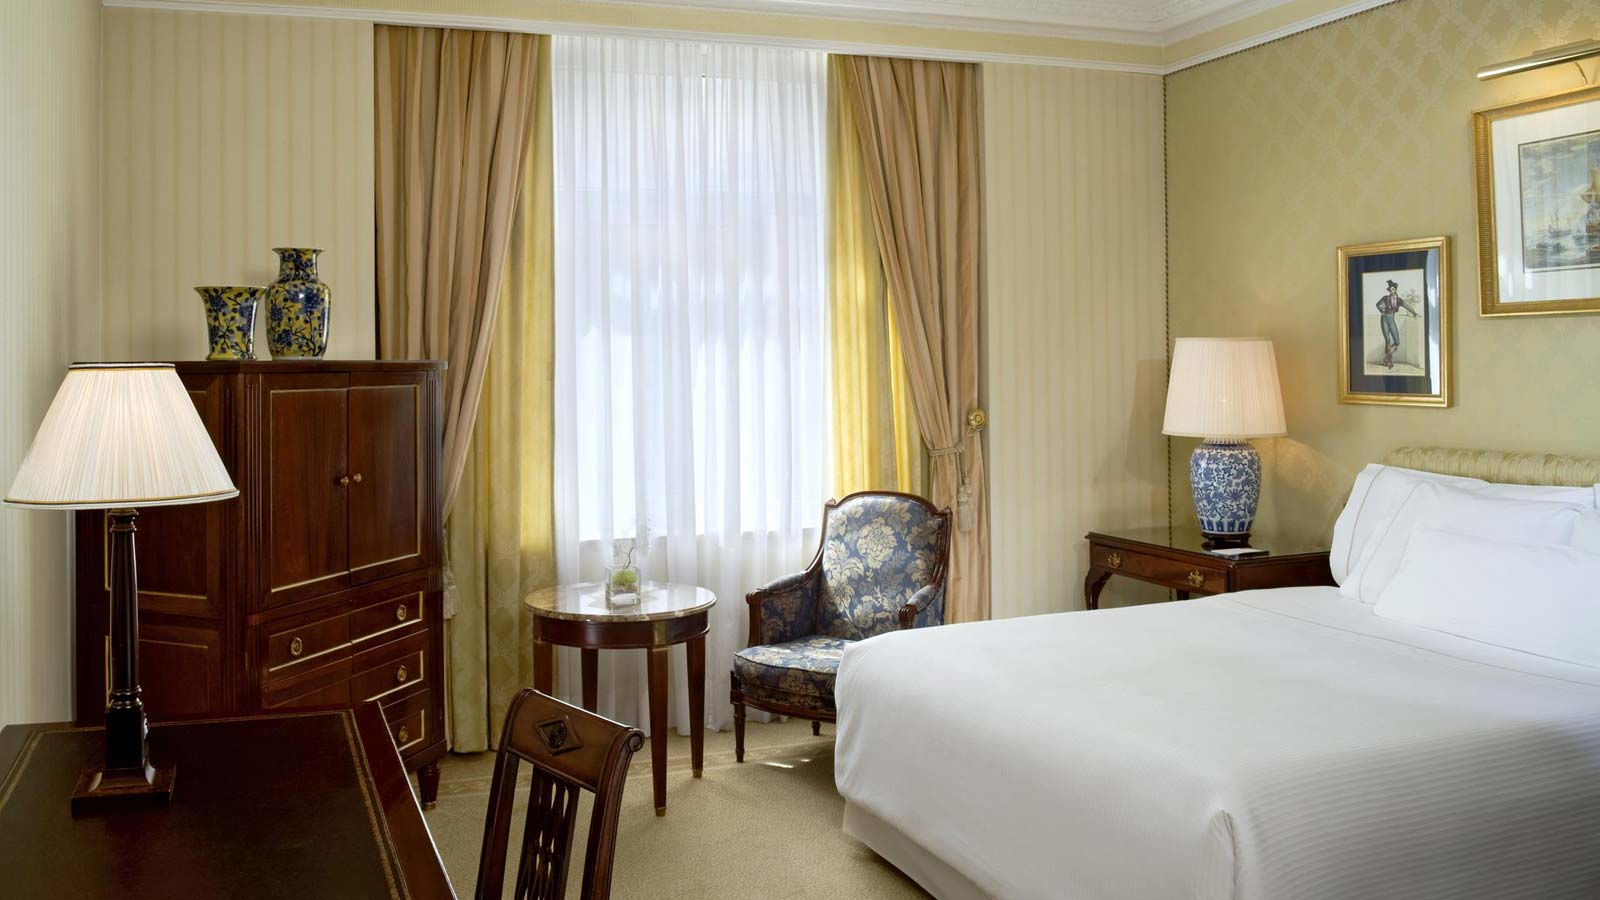 Hotel the westin palace madrid habitaciones y suites de for Armarios habitacion baratos madrid